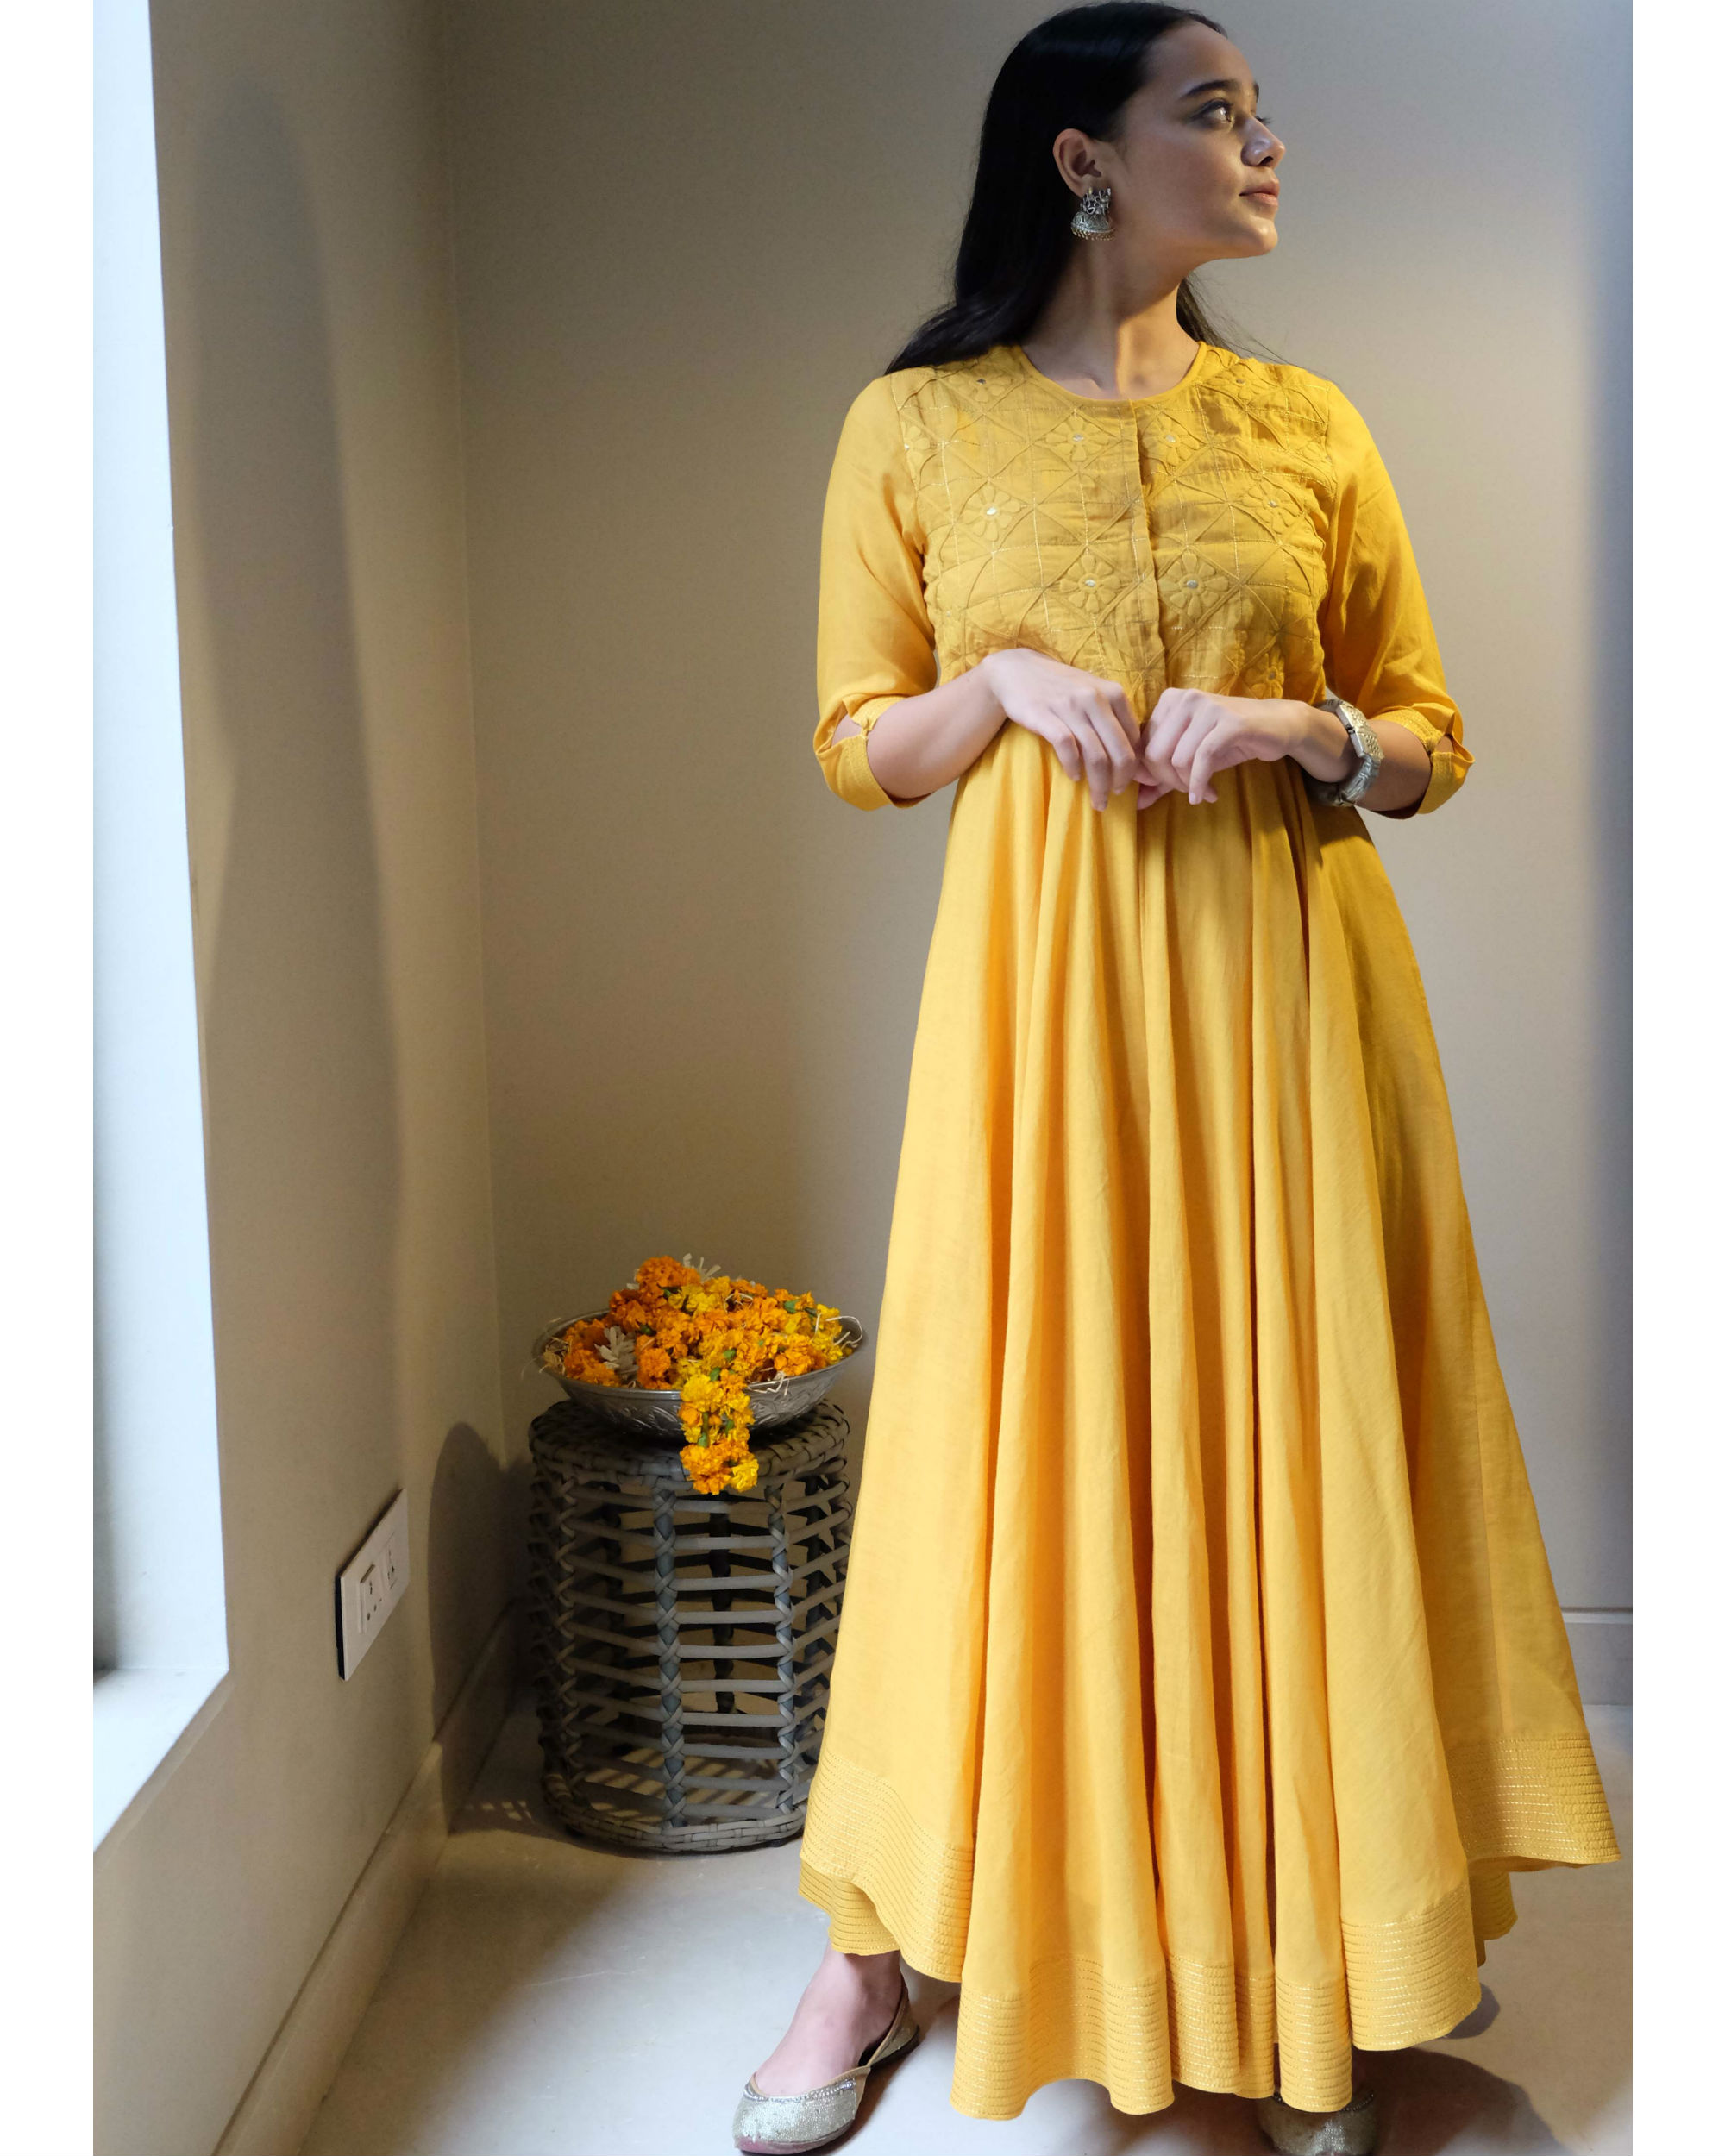 Yellow applique embroidery dress